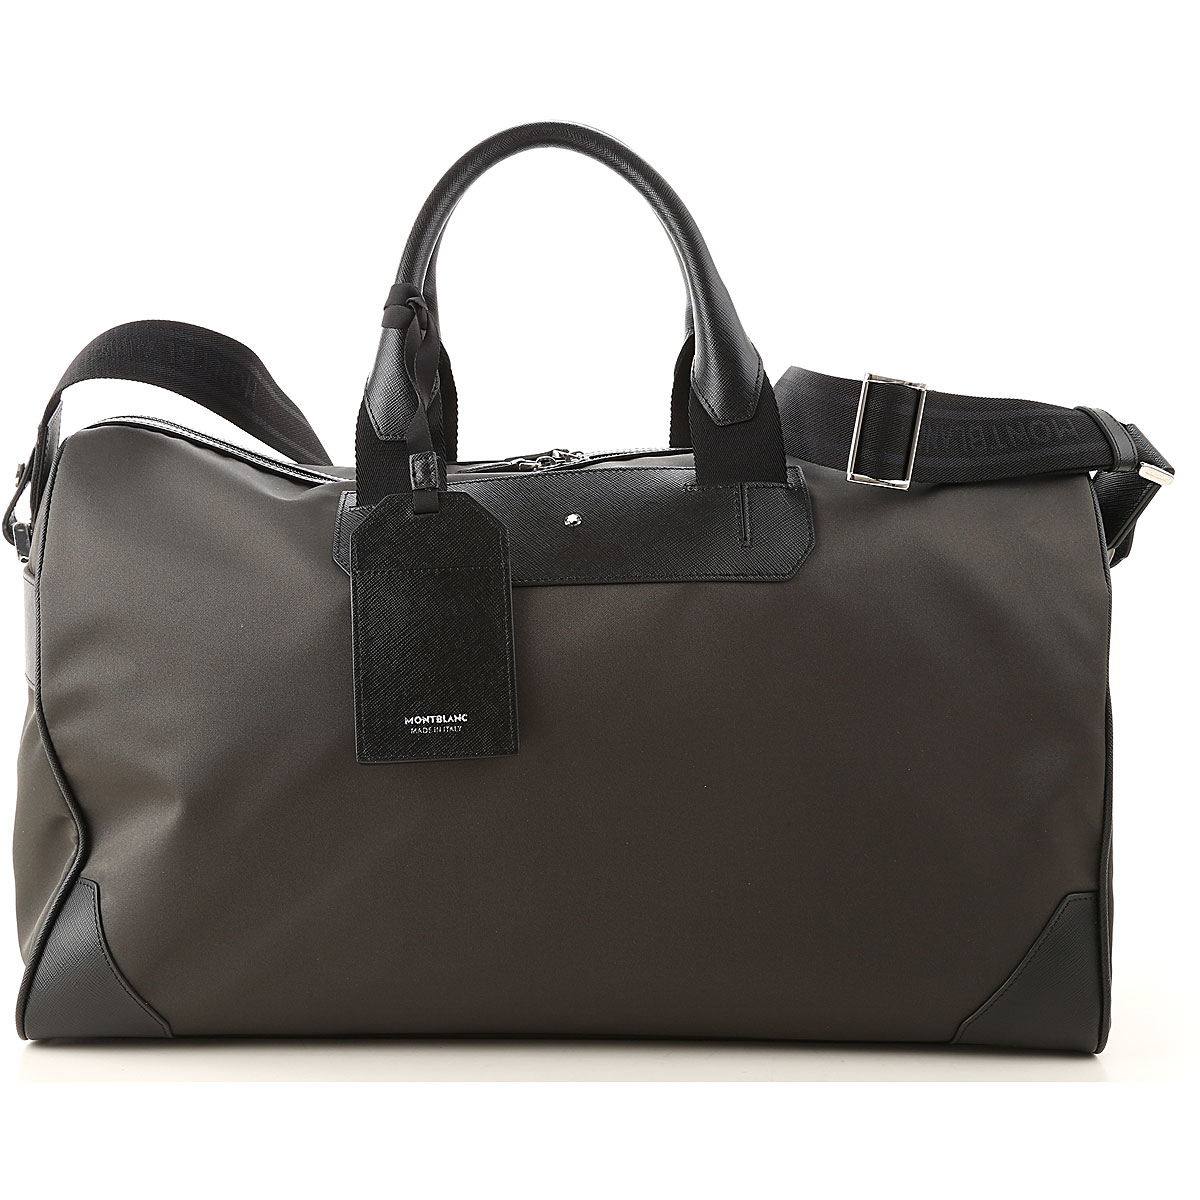 Mont Blanc Weekender Duffel Bag for Men Black UK - GOOFASH